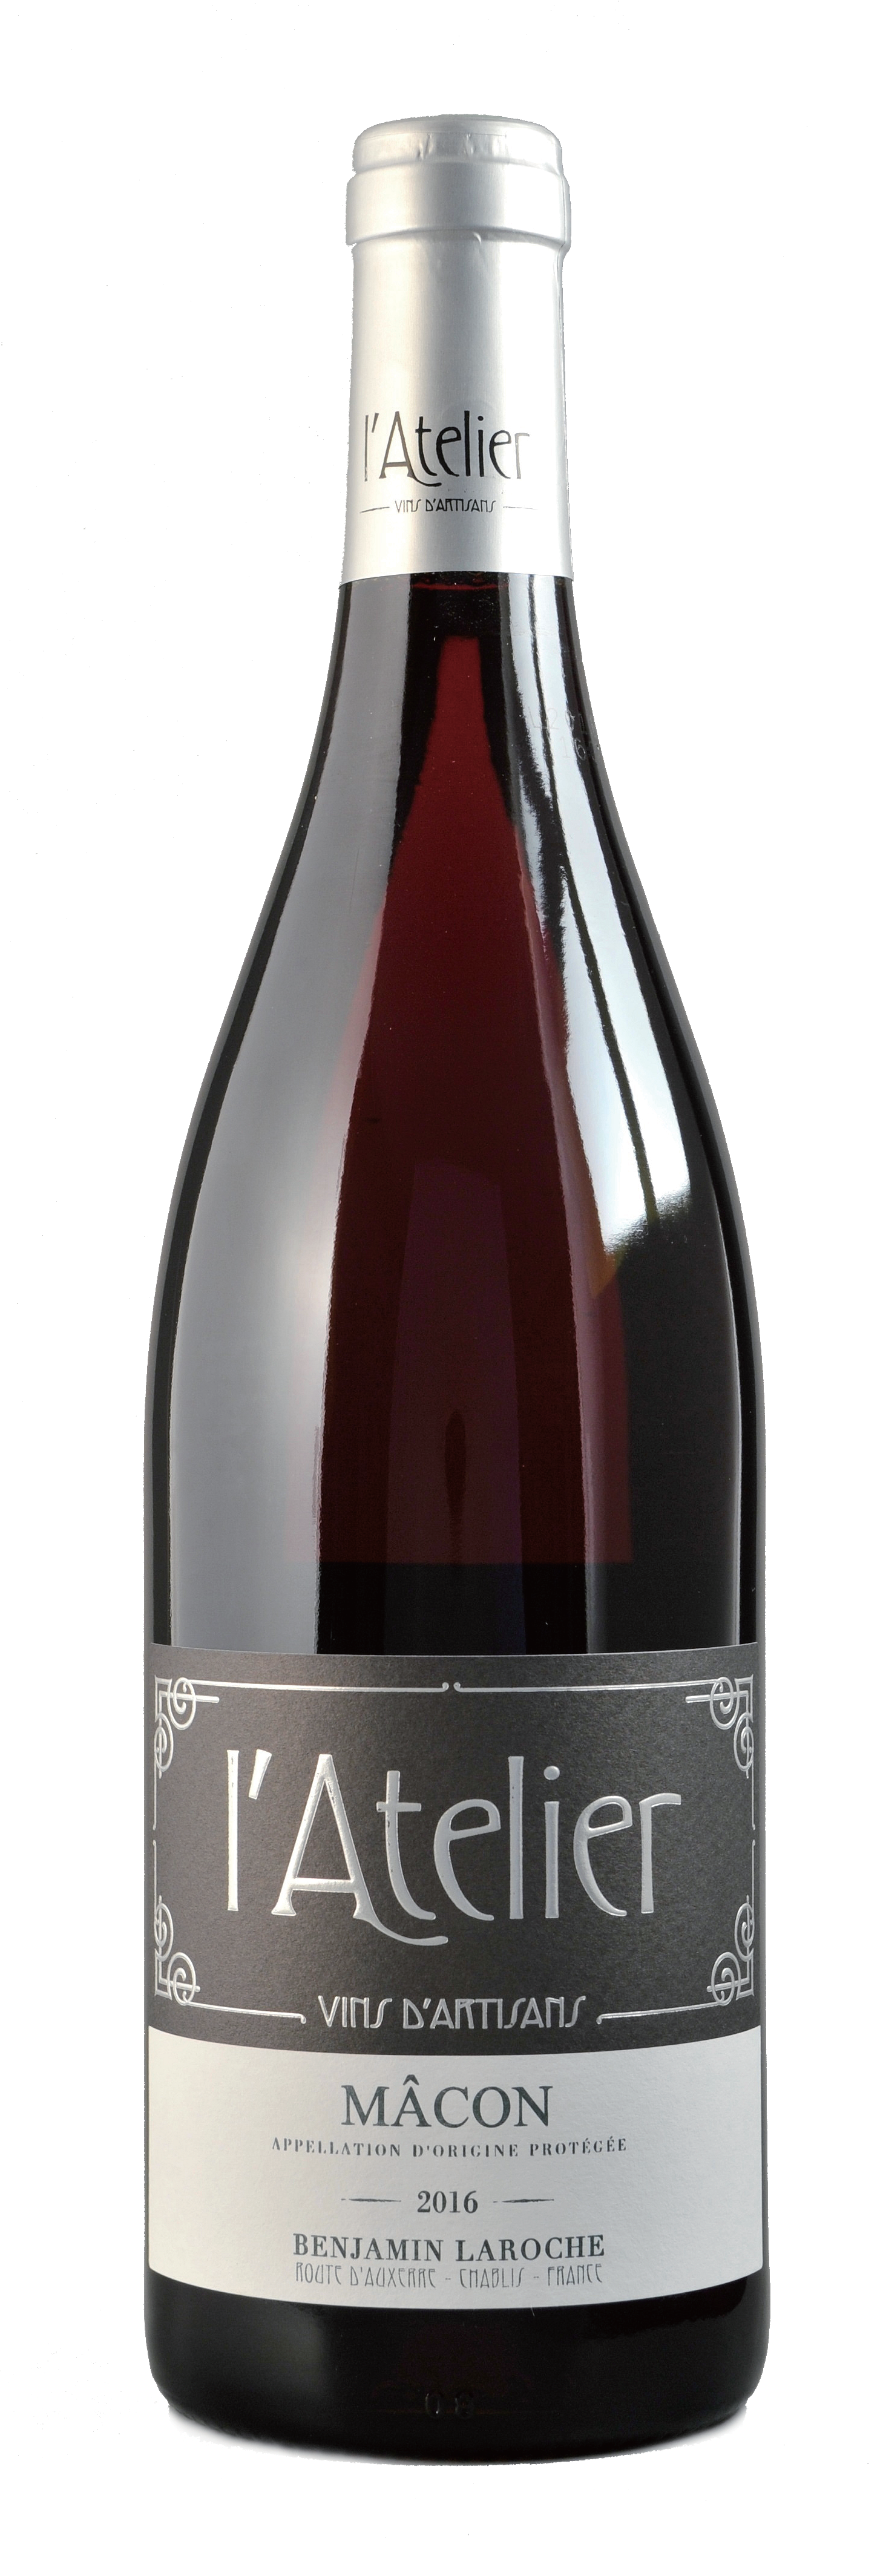 AOP Mâcon 2016, 750ml - Burgundy 布根地100% GamayNT$ 900有著Gamay葡萄品種的典型櫻桃紅色,略帶點紫色澤。紅色、黑色莓果(醋栗、藍莓)等香氣,這款Macon新鮮活躍且扎實的結構,是一款能與美食搭配合宜的葡萄酒,年輕時酒體較為緊實,陳年後轉化為柔和細膩。Cherry red colour with violet hints typical of Gamay. On the nose, aromas are developing with little red and black berries hints (gooseberries and blueberries). Vivid and nervous, this Mâcon is well structured with a spontaneous nature. Friendly wine for gourmet drinkers, firm in its youth, it softens with age.